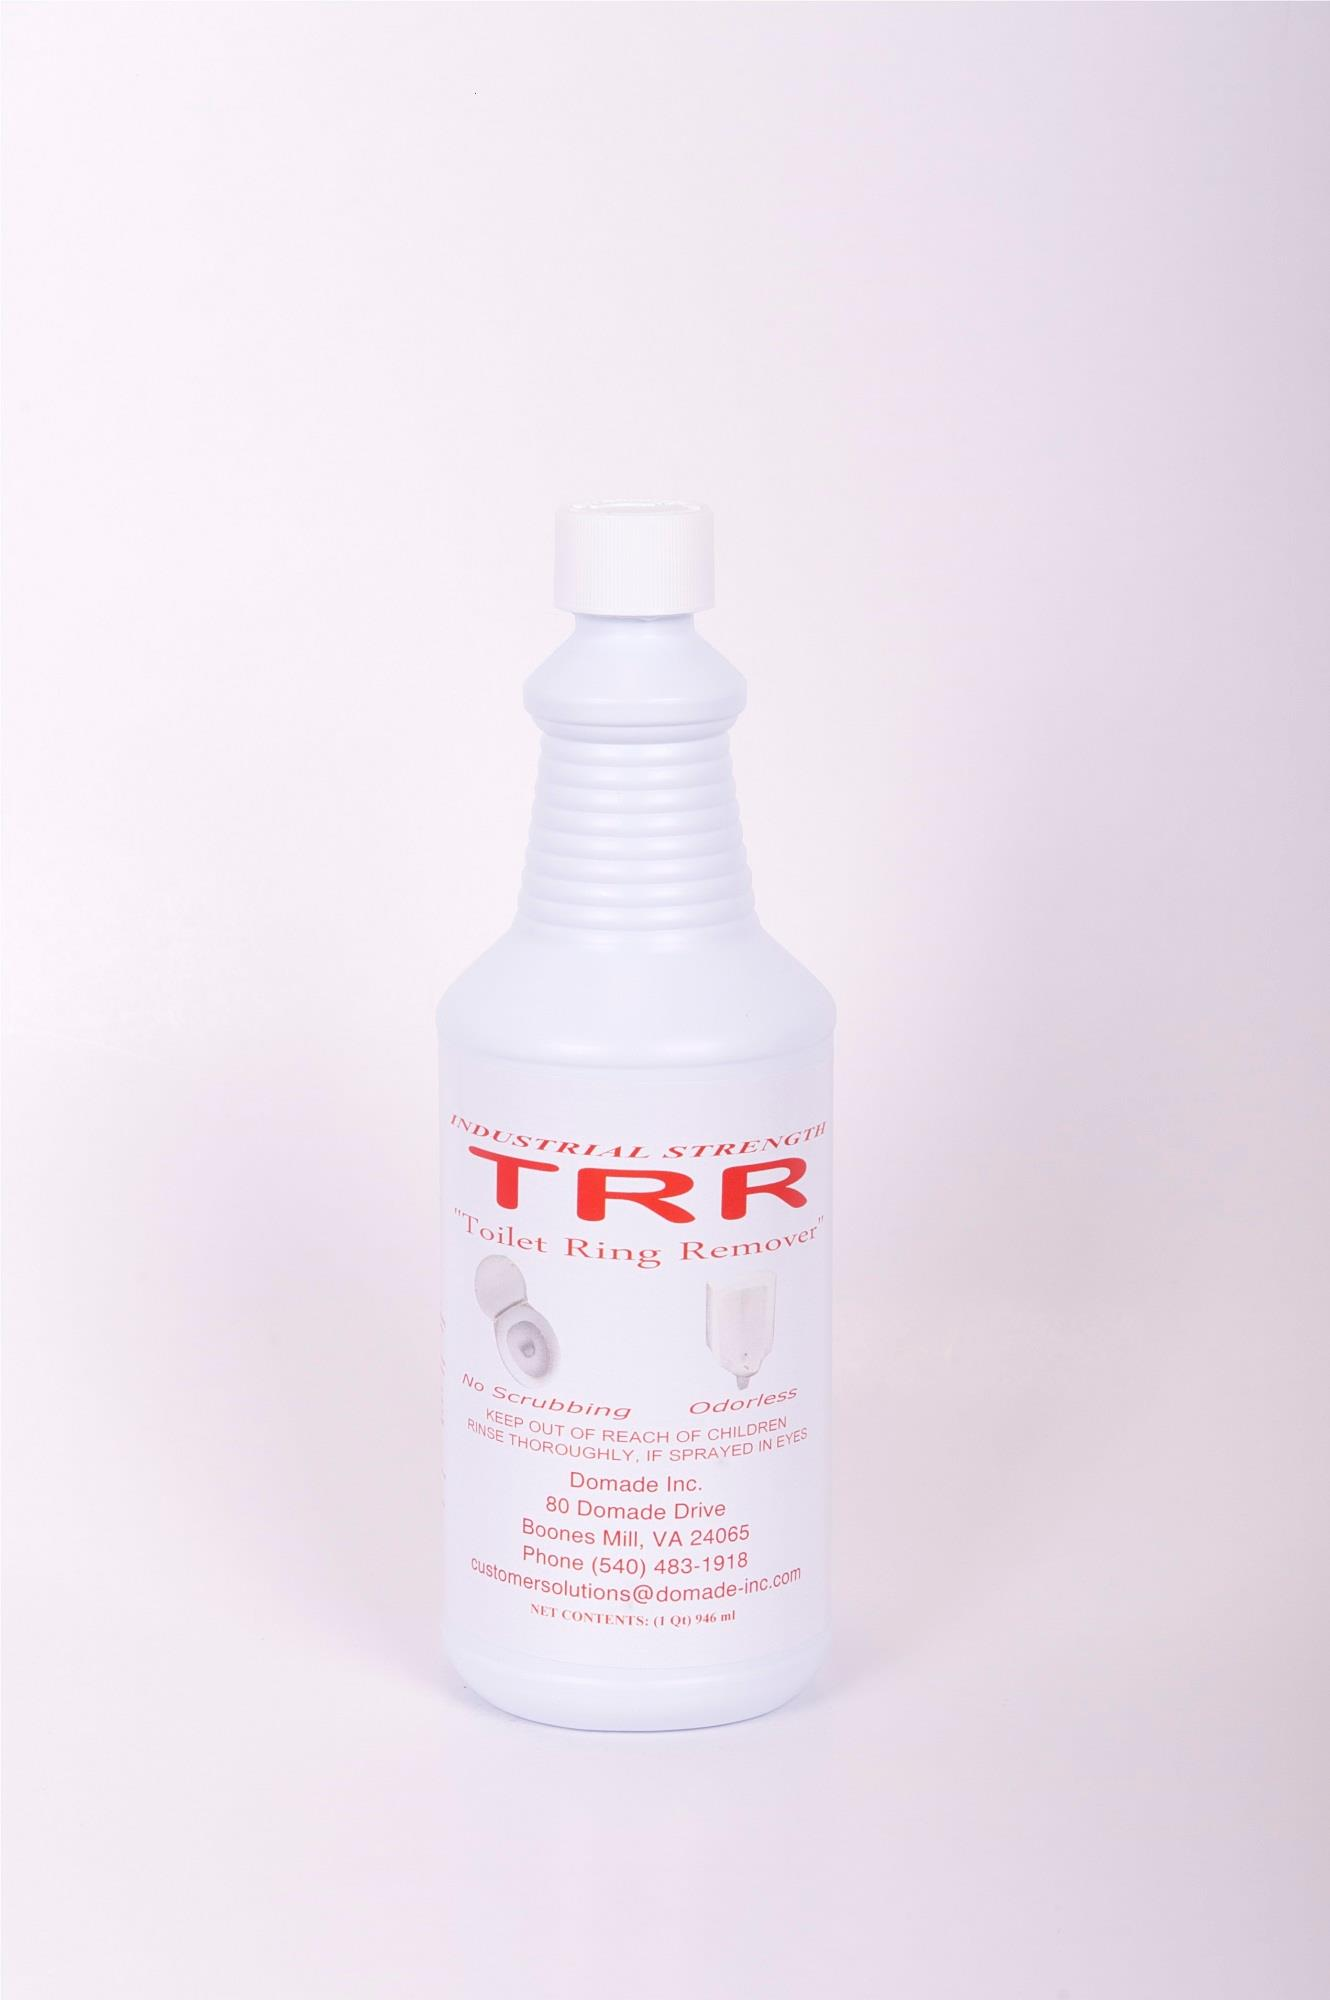 Trr Total Ring Remover 12 32 Oz Toilet Bowl Cleaner